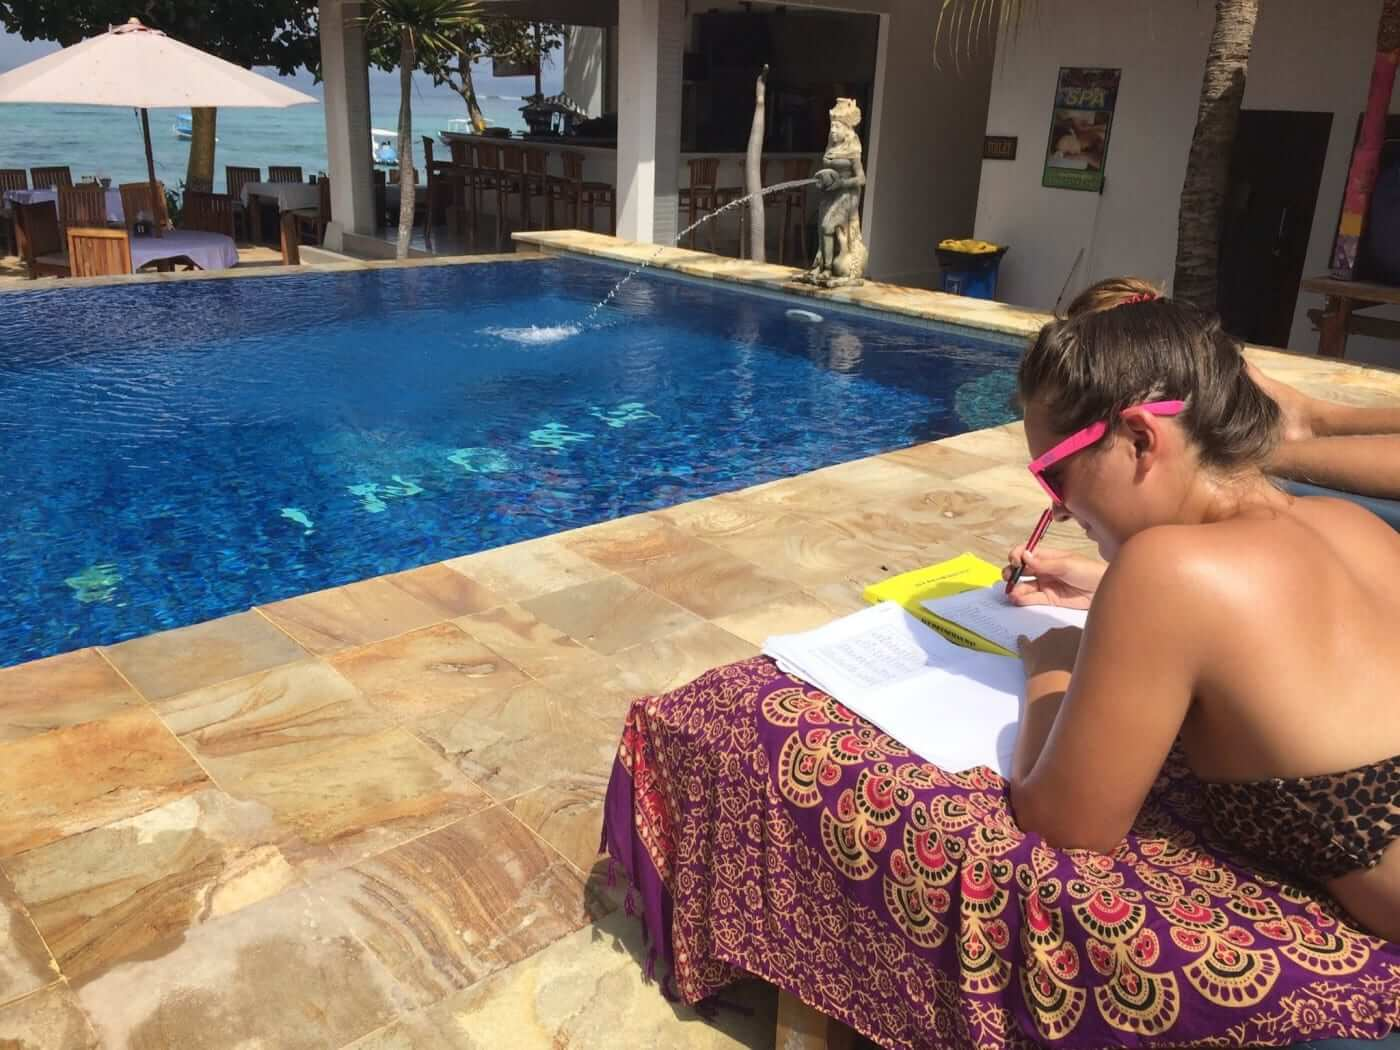 studying in front of the pool